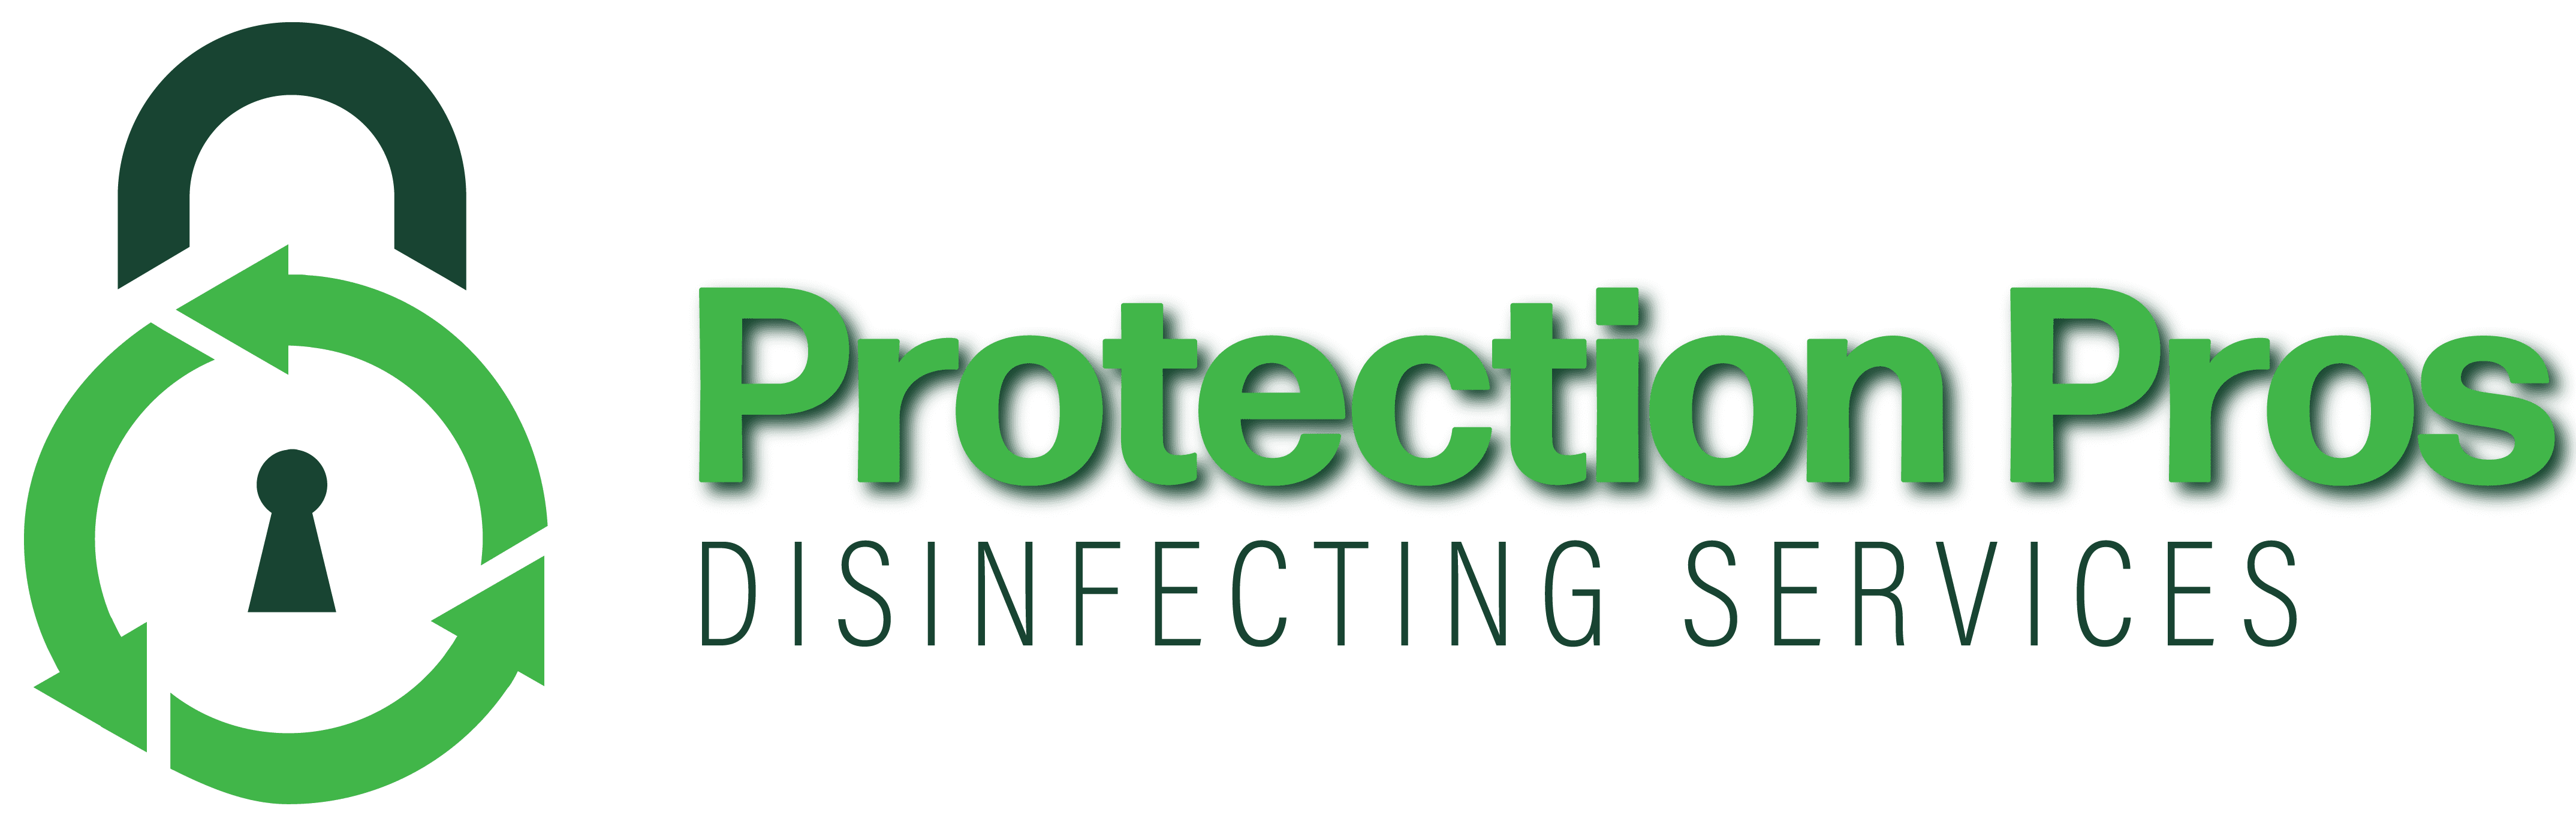 Protection Pros Disinfecting Services logo